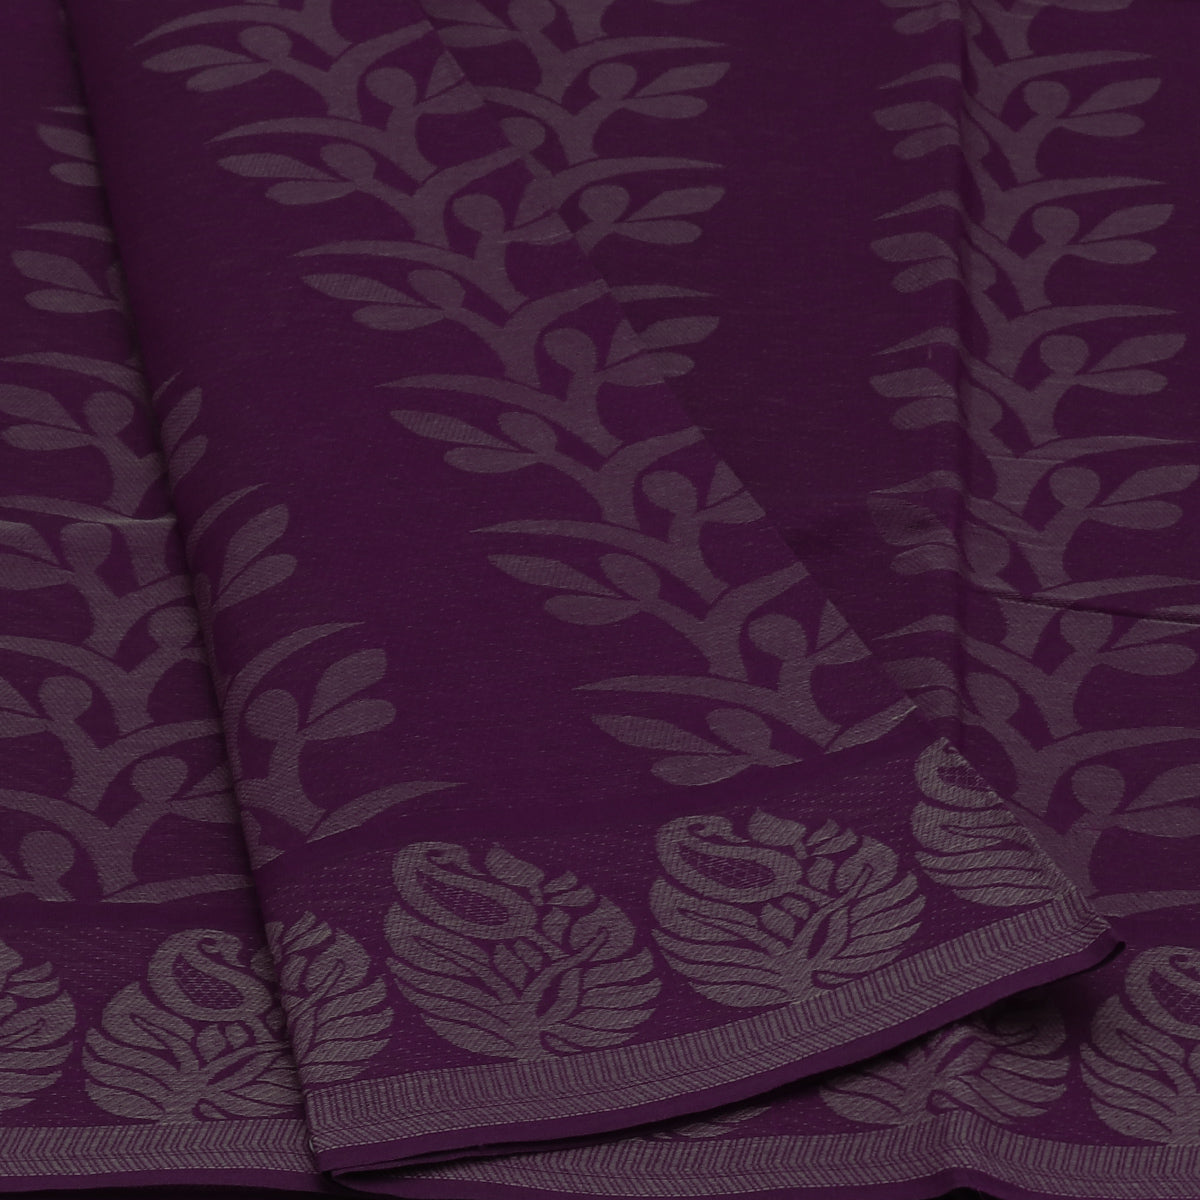 Coimbatore Cotton Saree Violet with Mango border